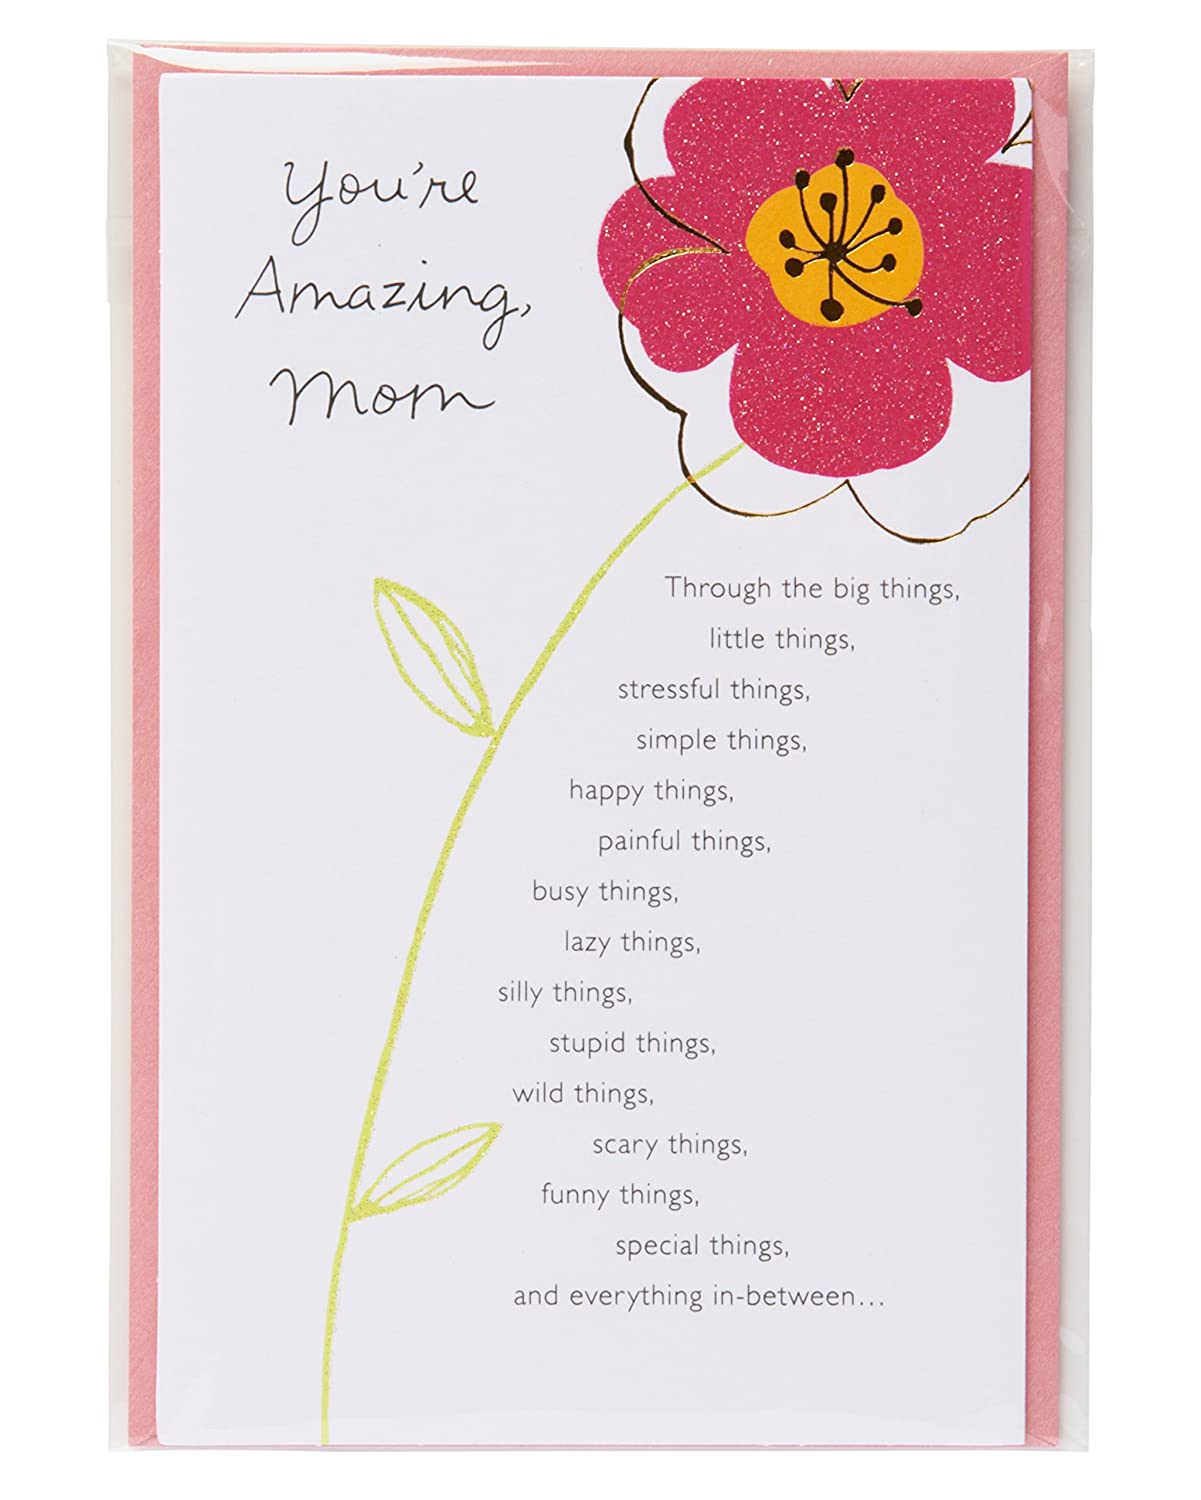 Amazon American Greetings Youre Amazing Floral Birthday Greeting Card For Mom With Glitter Office Products